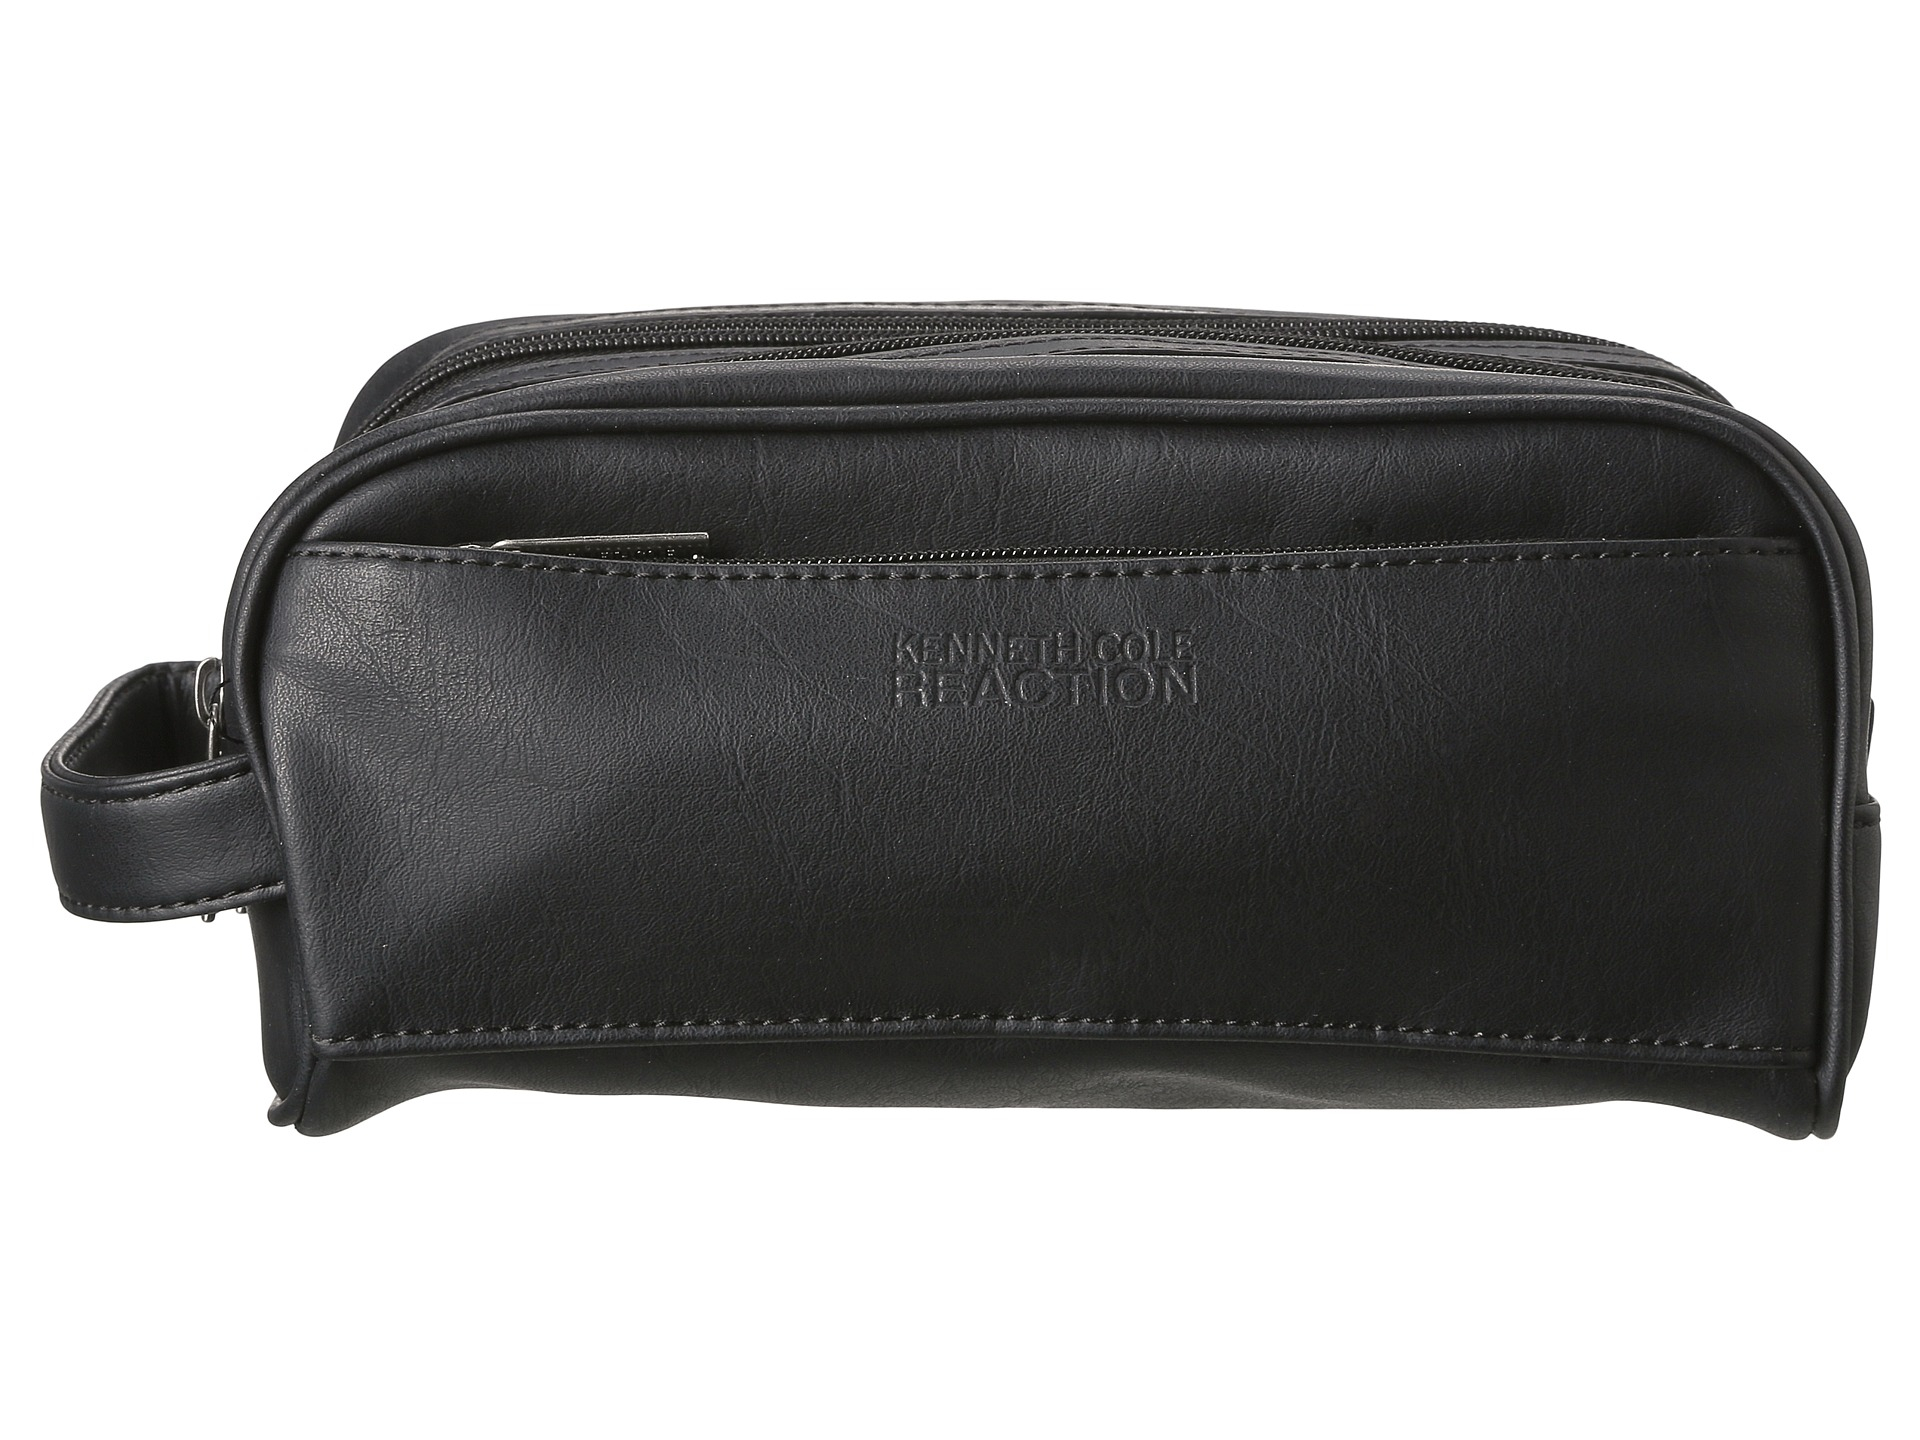 Lyst - Kenneth Cole Reaction Vinyl Double Compartment Top Zip Travel ... 8280785fefd1f